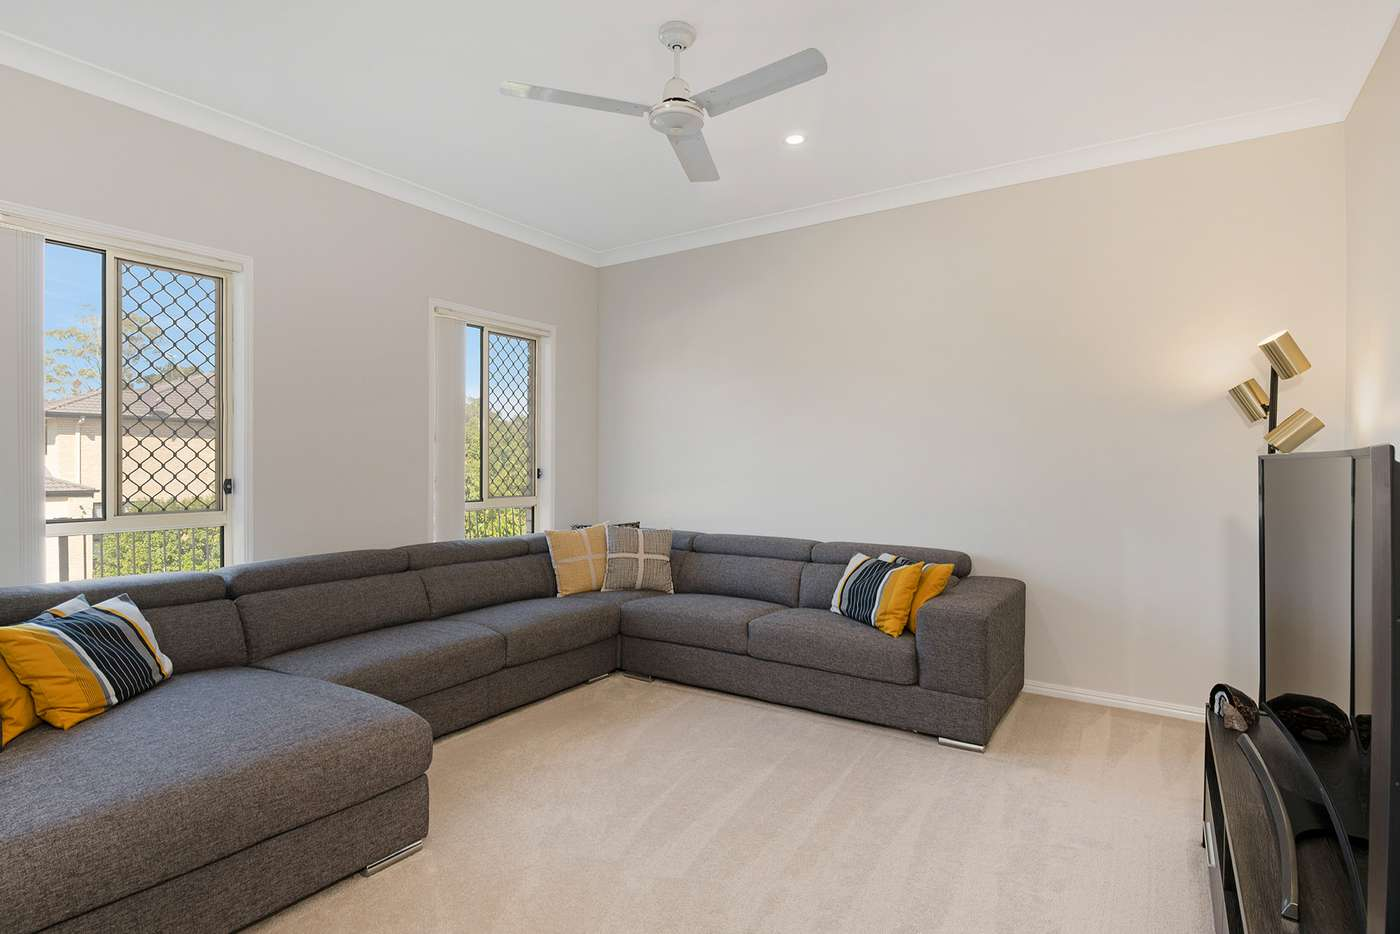 Fifth view of Homely house listing, 8 Turrbal Street, Bellbowrie QLD 4070